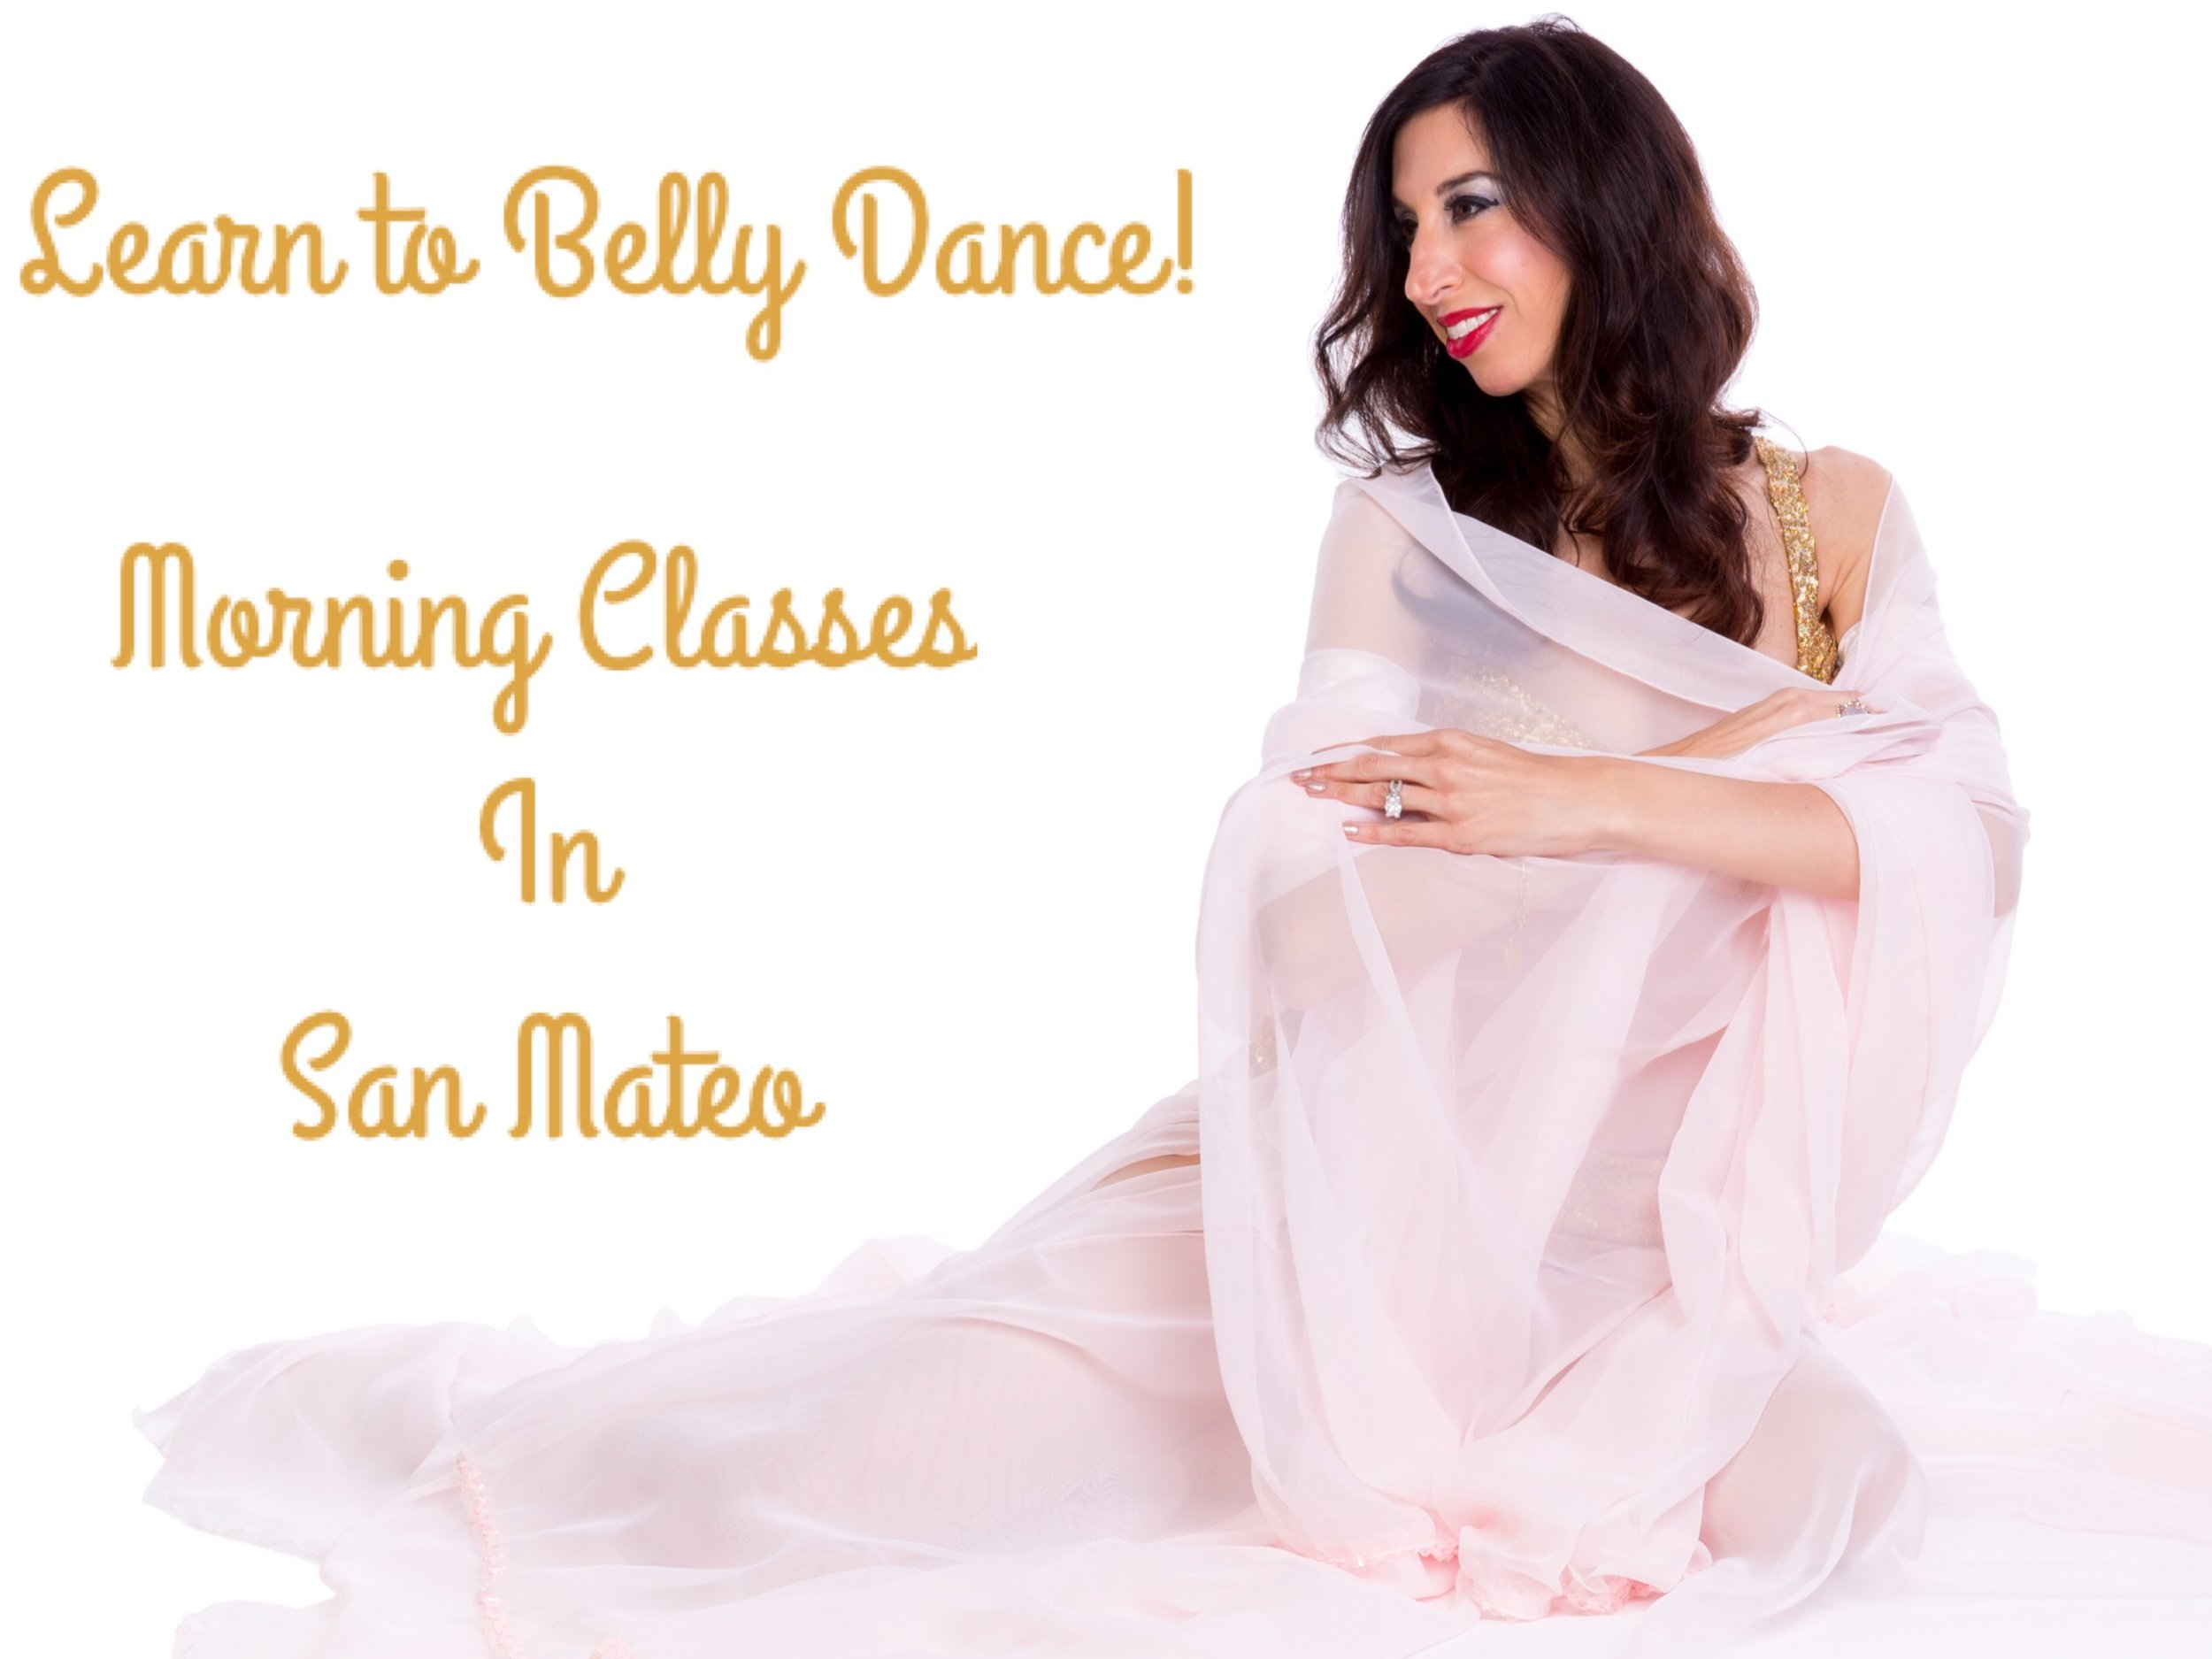 San Mateo Belly Dance Classes in 2017!